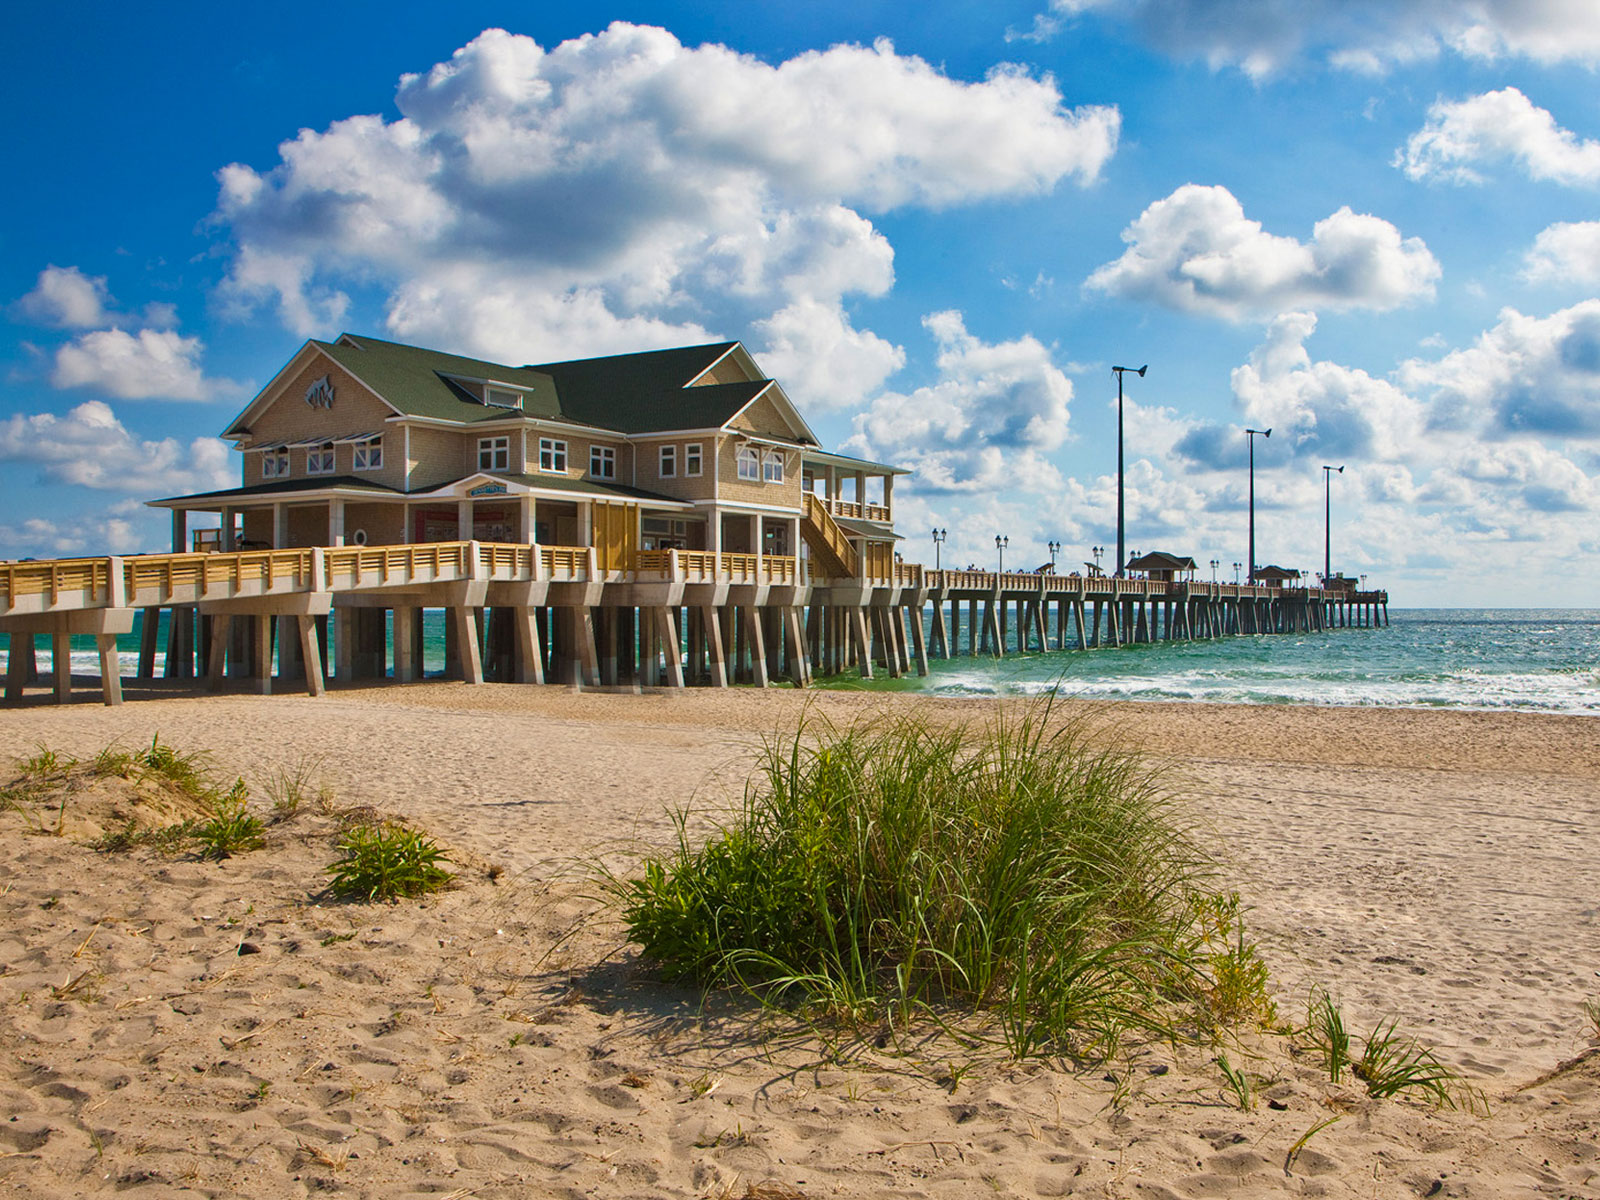 Exterior of Jennettes Pier on a sunny day with blue skies and white clouds at Nags Head, North Carolina